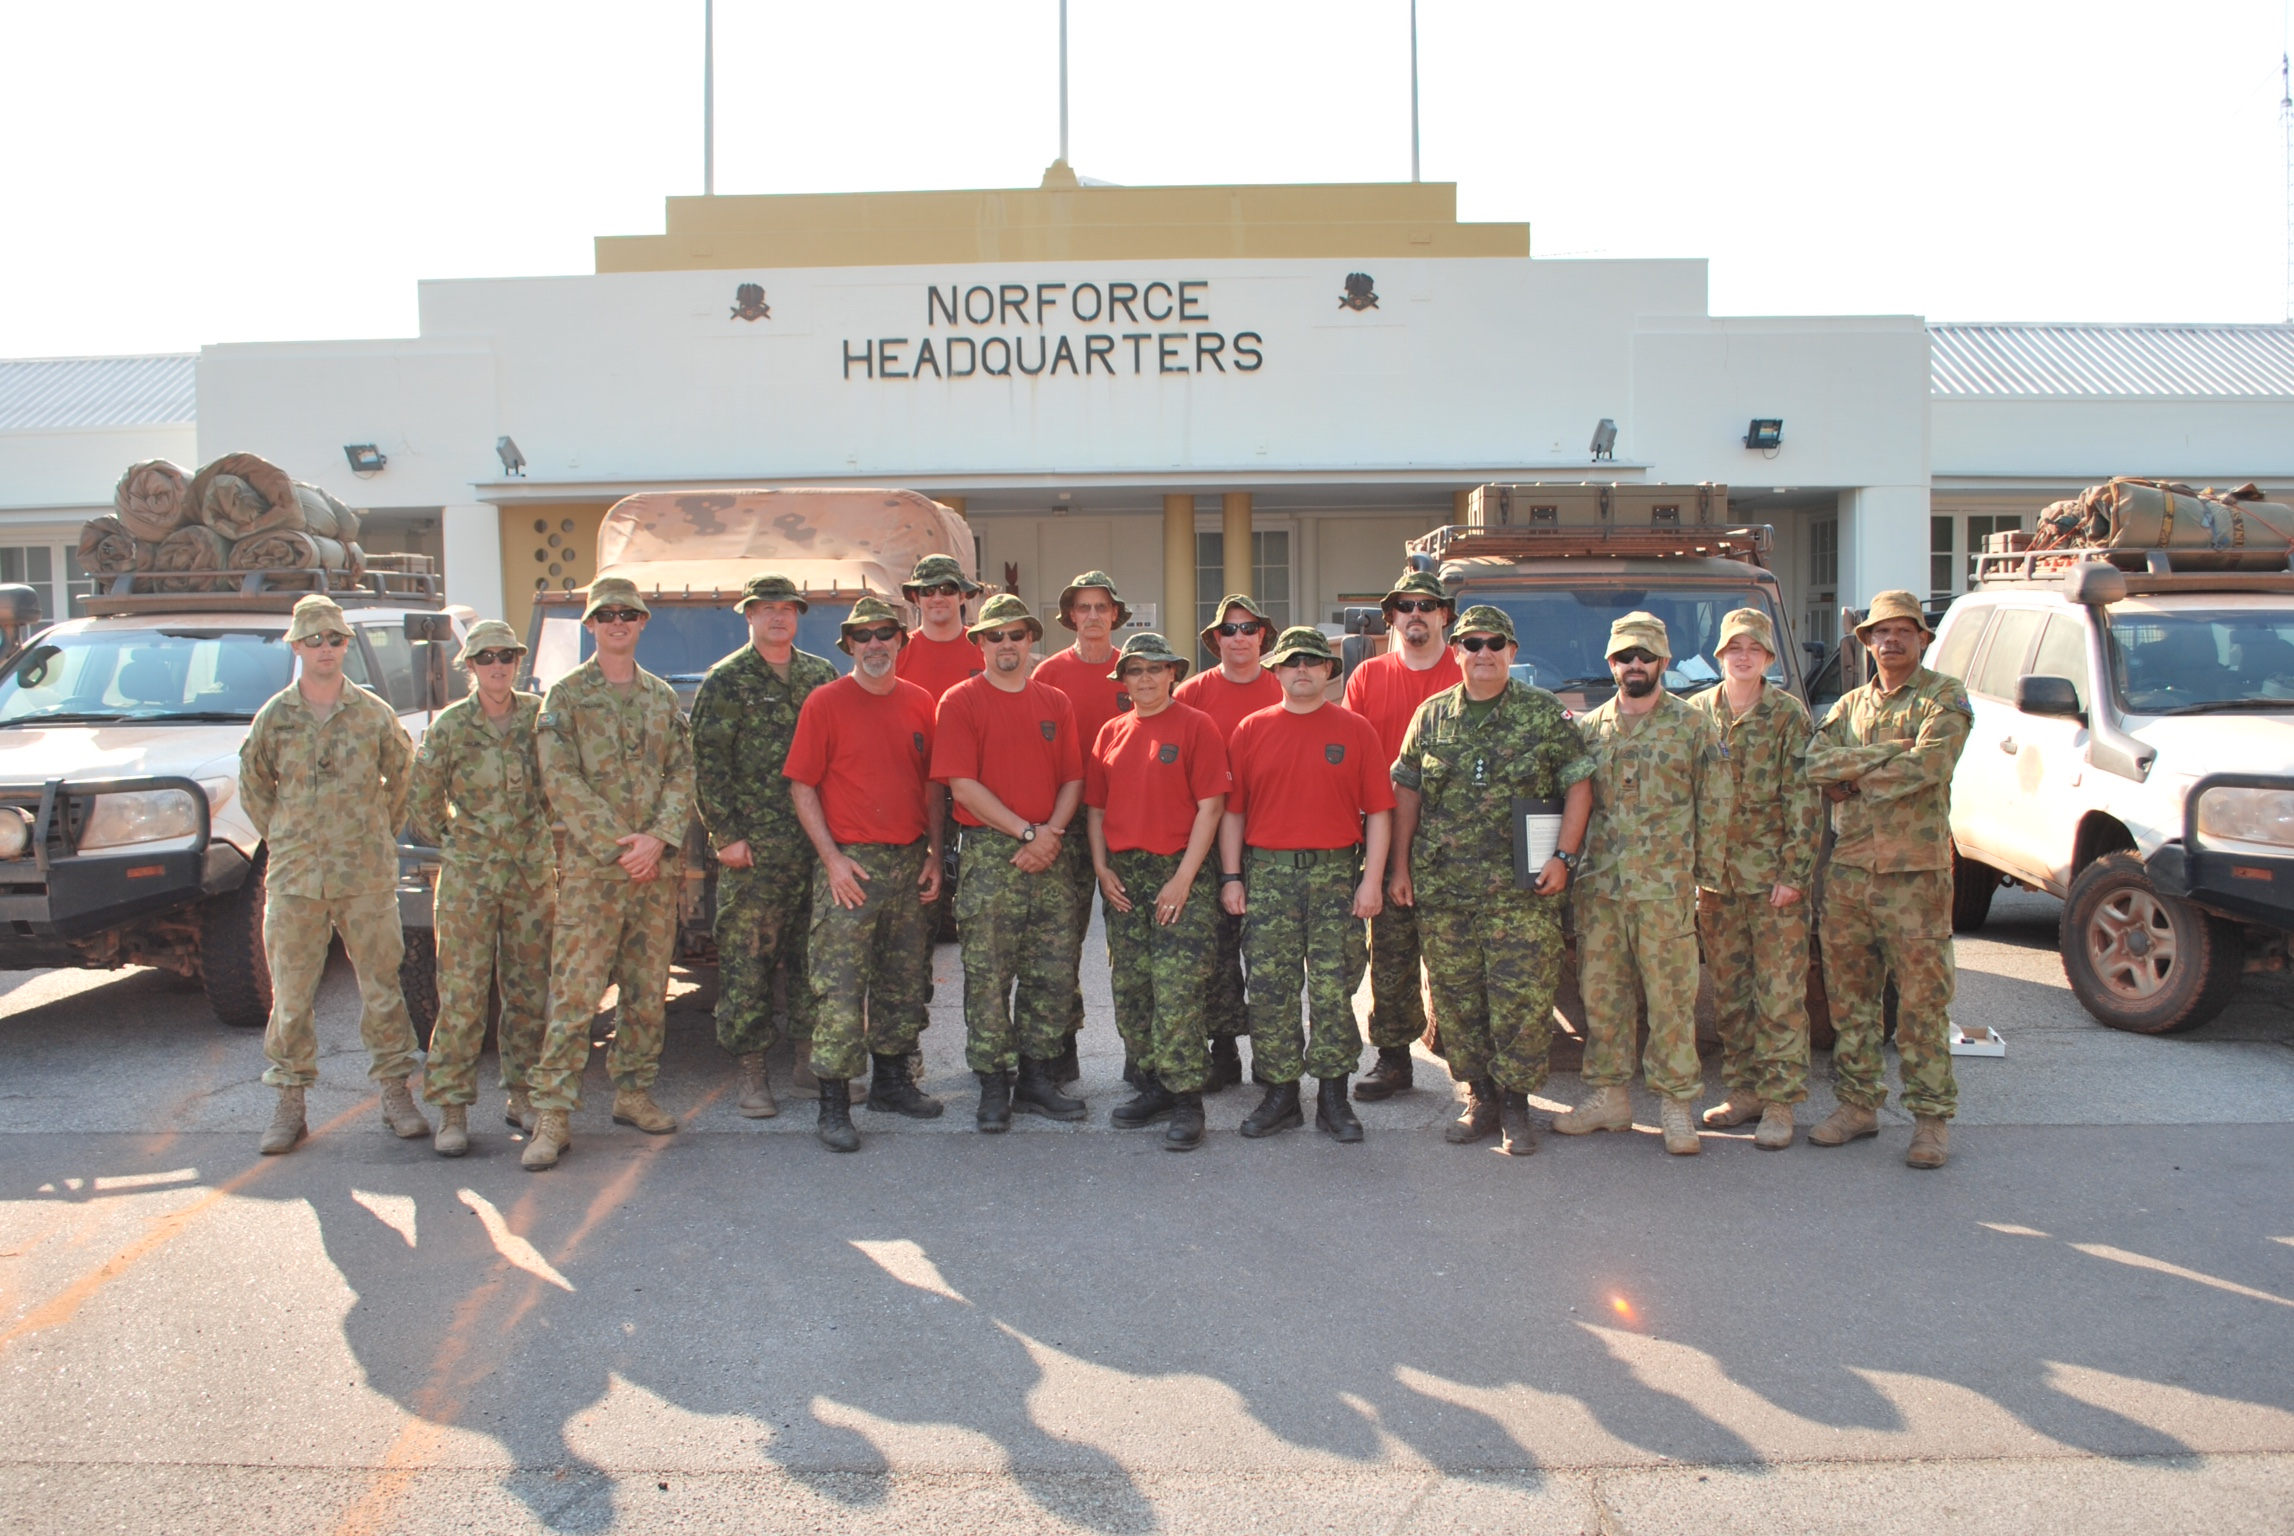 Members of the 4th Canadian Ranger Patrol Group are pictured outside the North West Mobile Force headquarters.